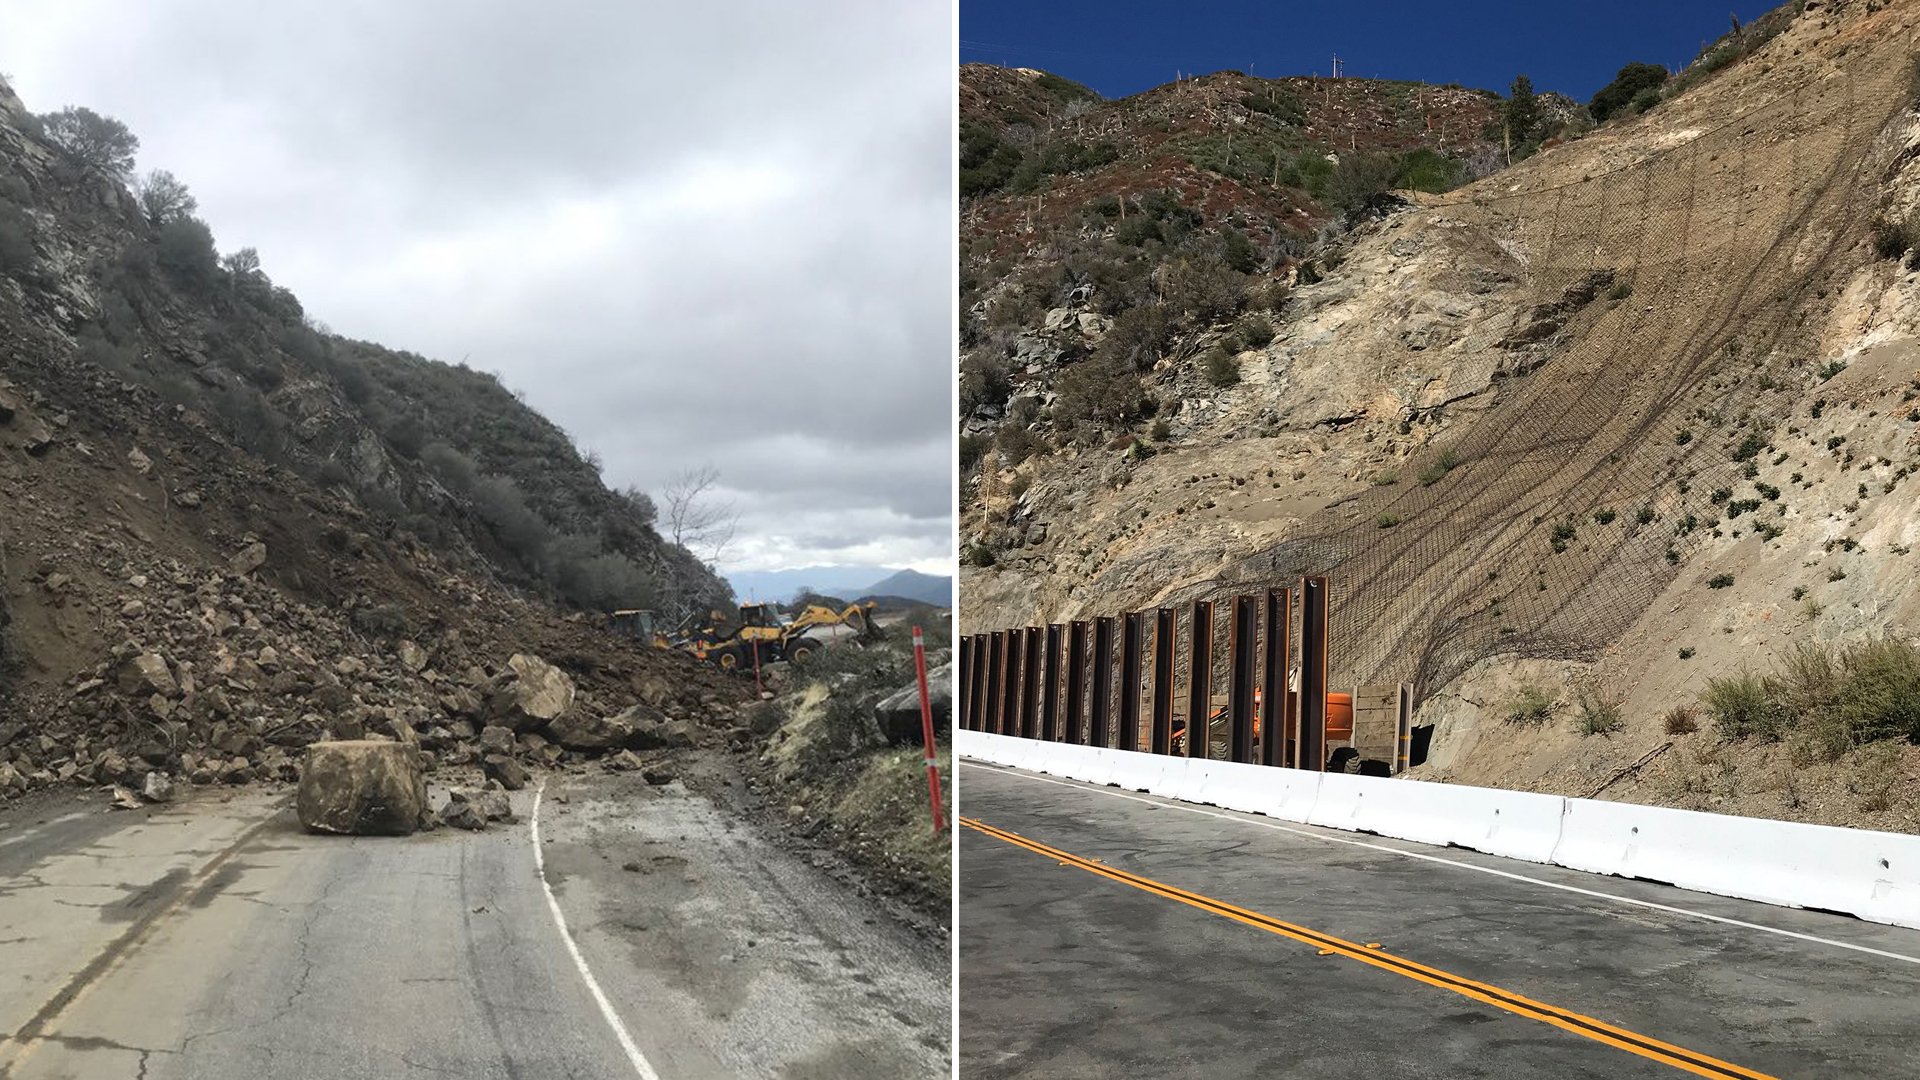 A section of the Angeles Crest Highway is seen during repairs of a Feb. 15, 2018, rock slide and after reopening on Oct. 22, 2019. (Credit: Caltrans)